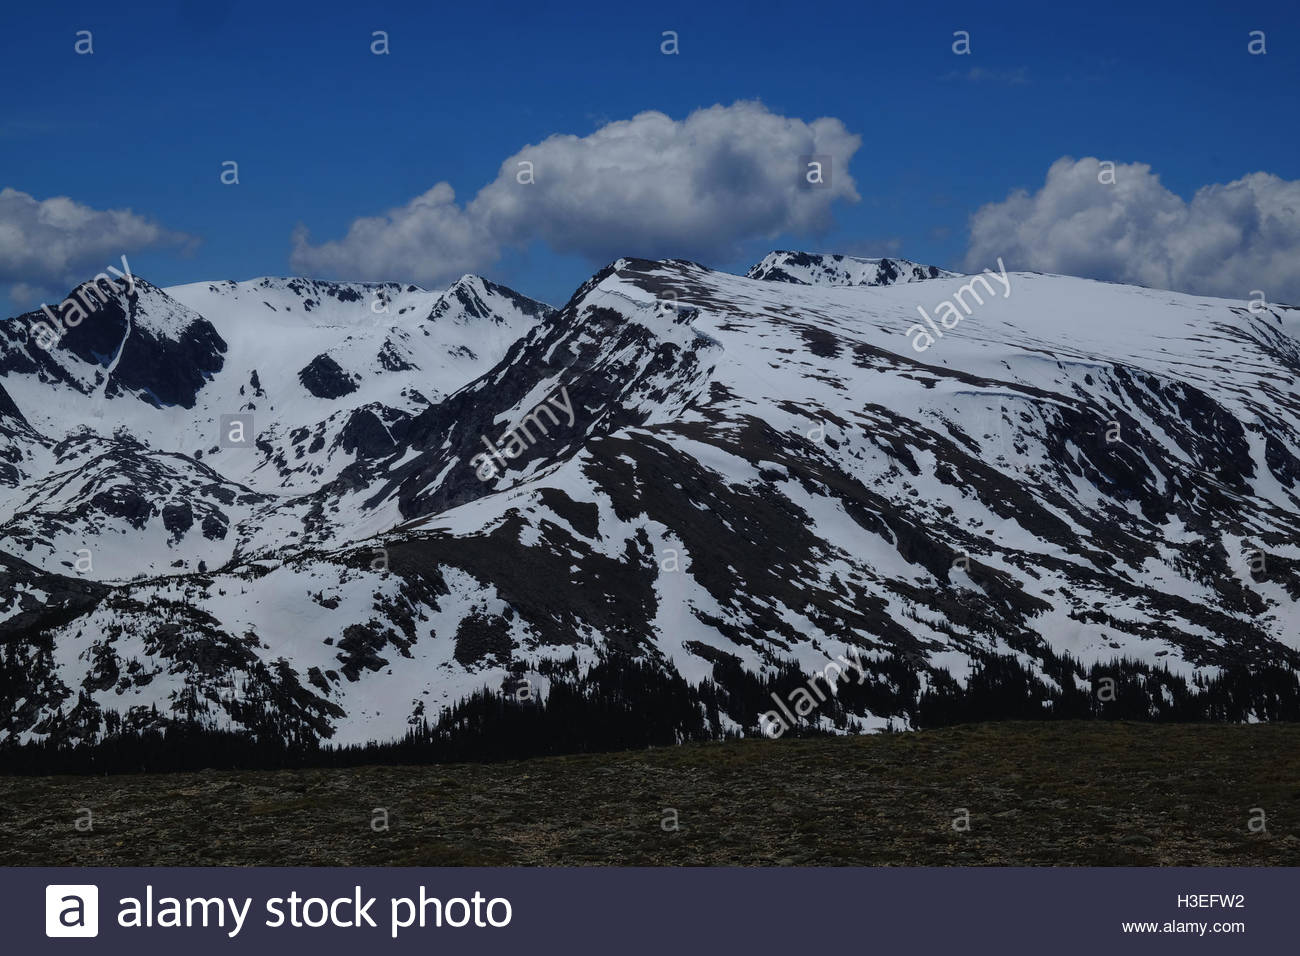 Patches of snow cover a mountain peak in Rocky Mountain National Park, Colorado. - Stock Image